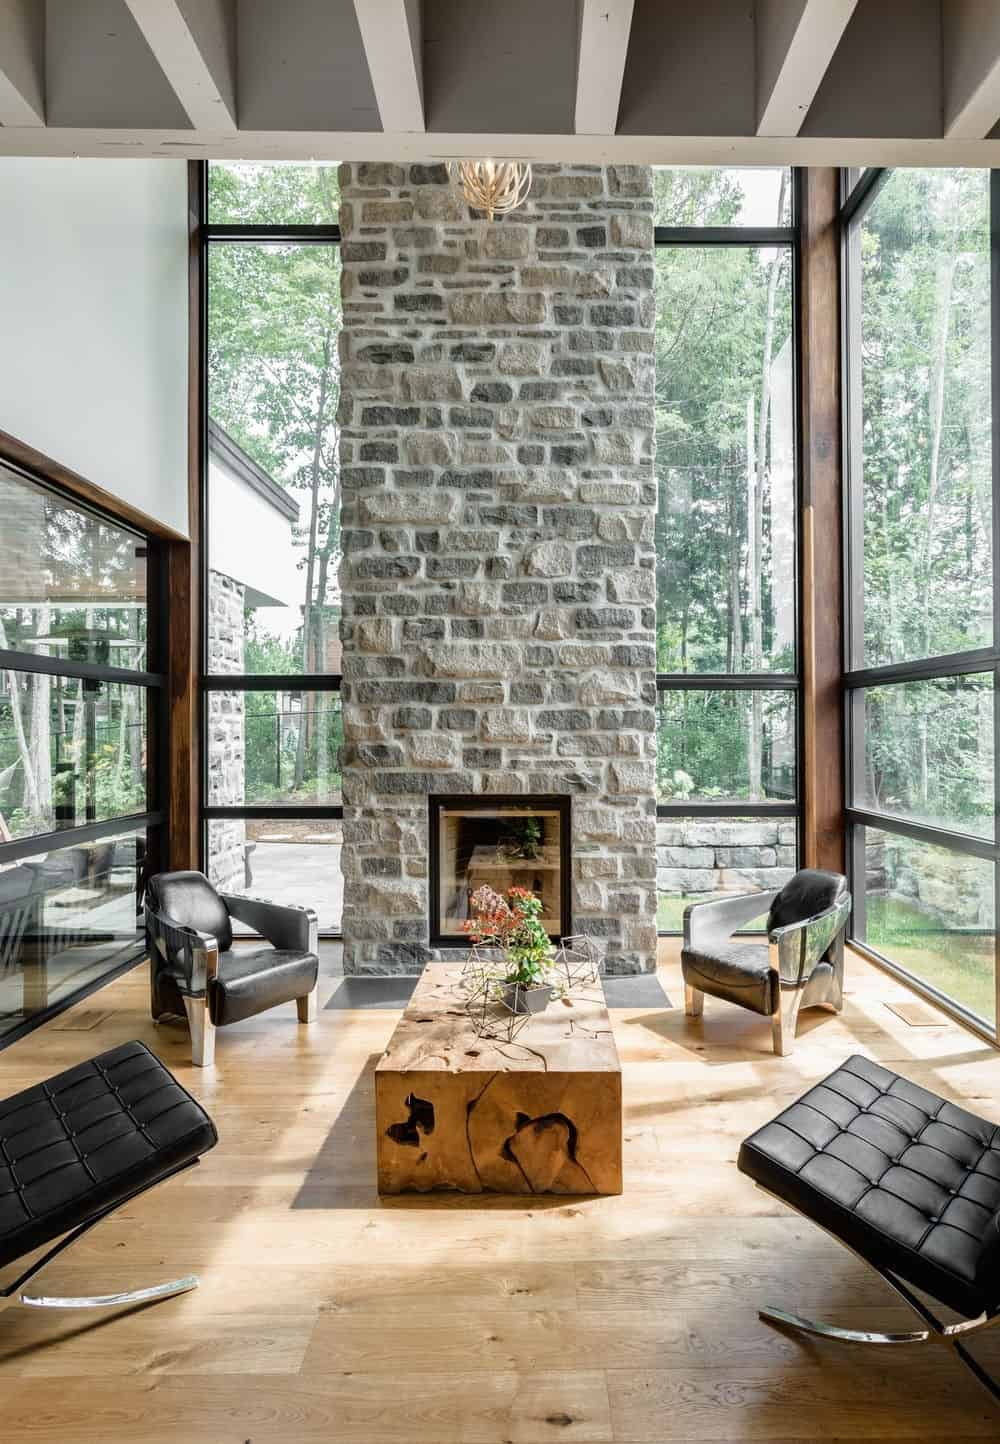 The living room boasts a modish style with tall brick fireplace. Photo credit: Dominic Boudreau